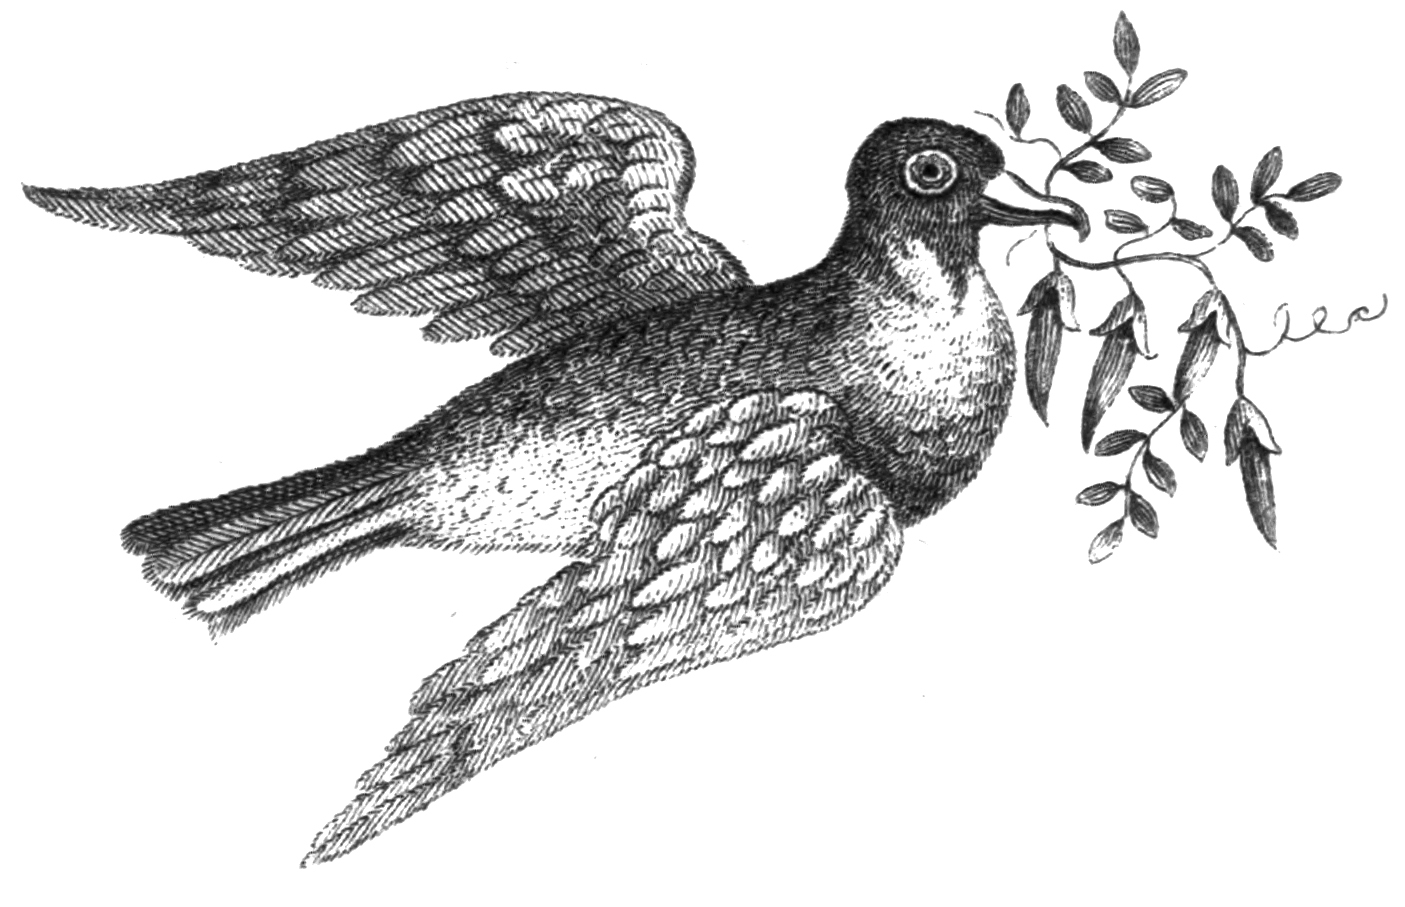 Pigeon illustration - photo#7